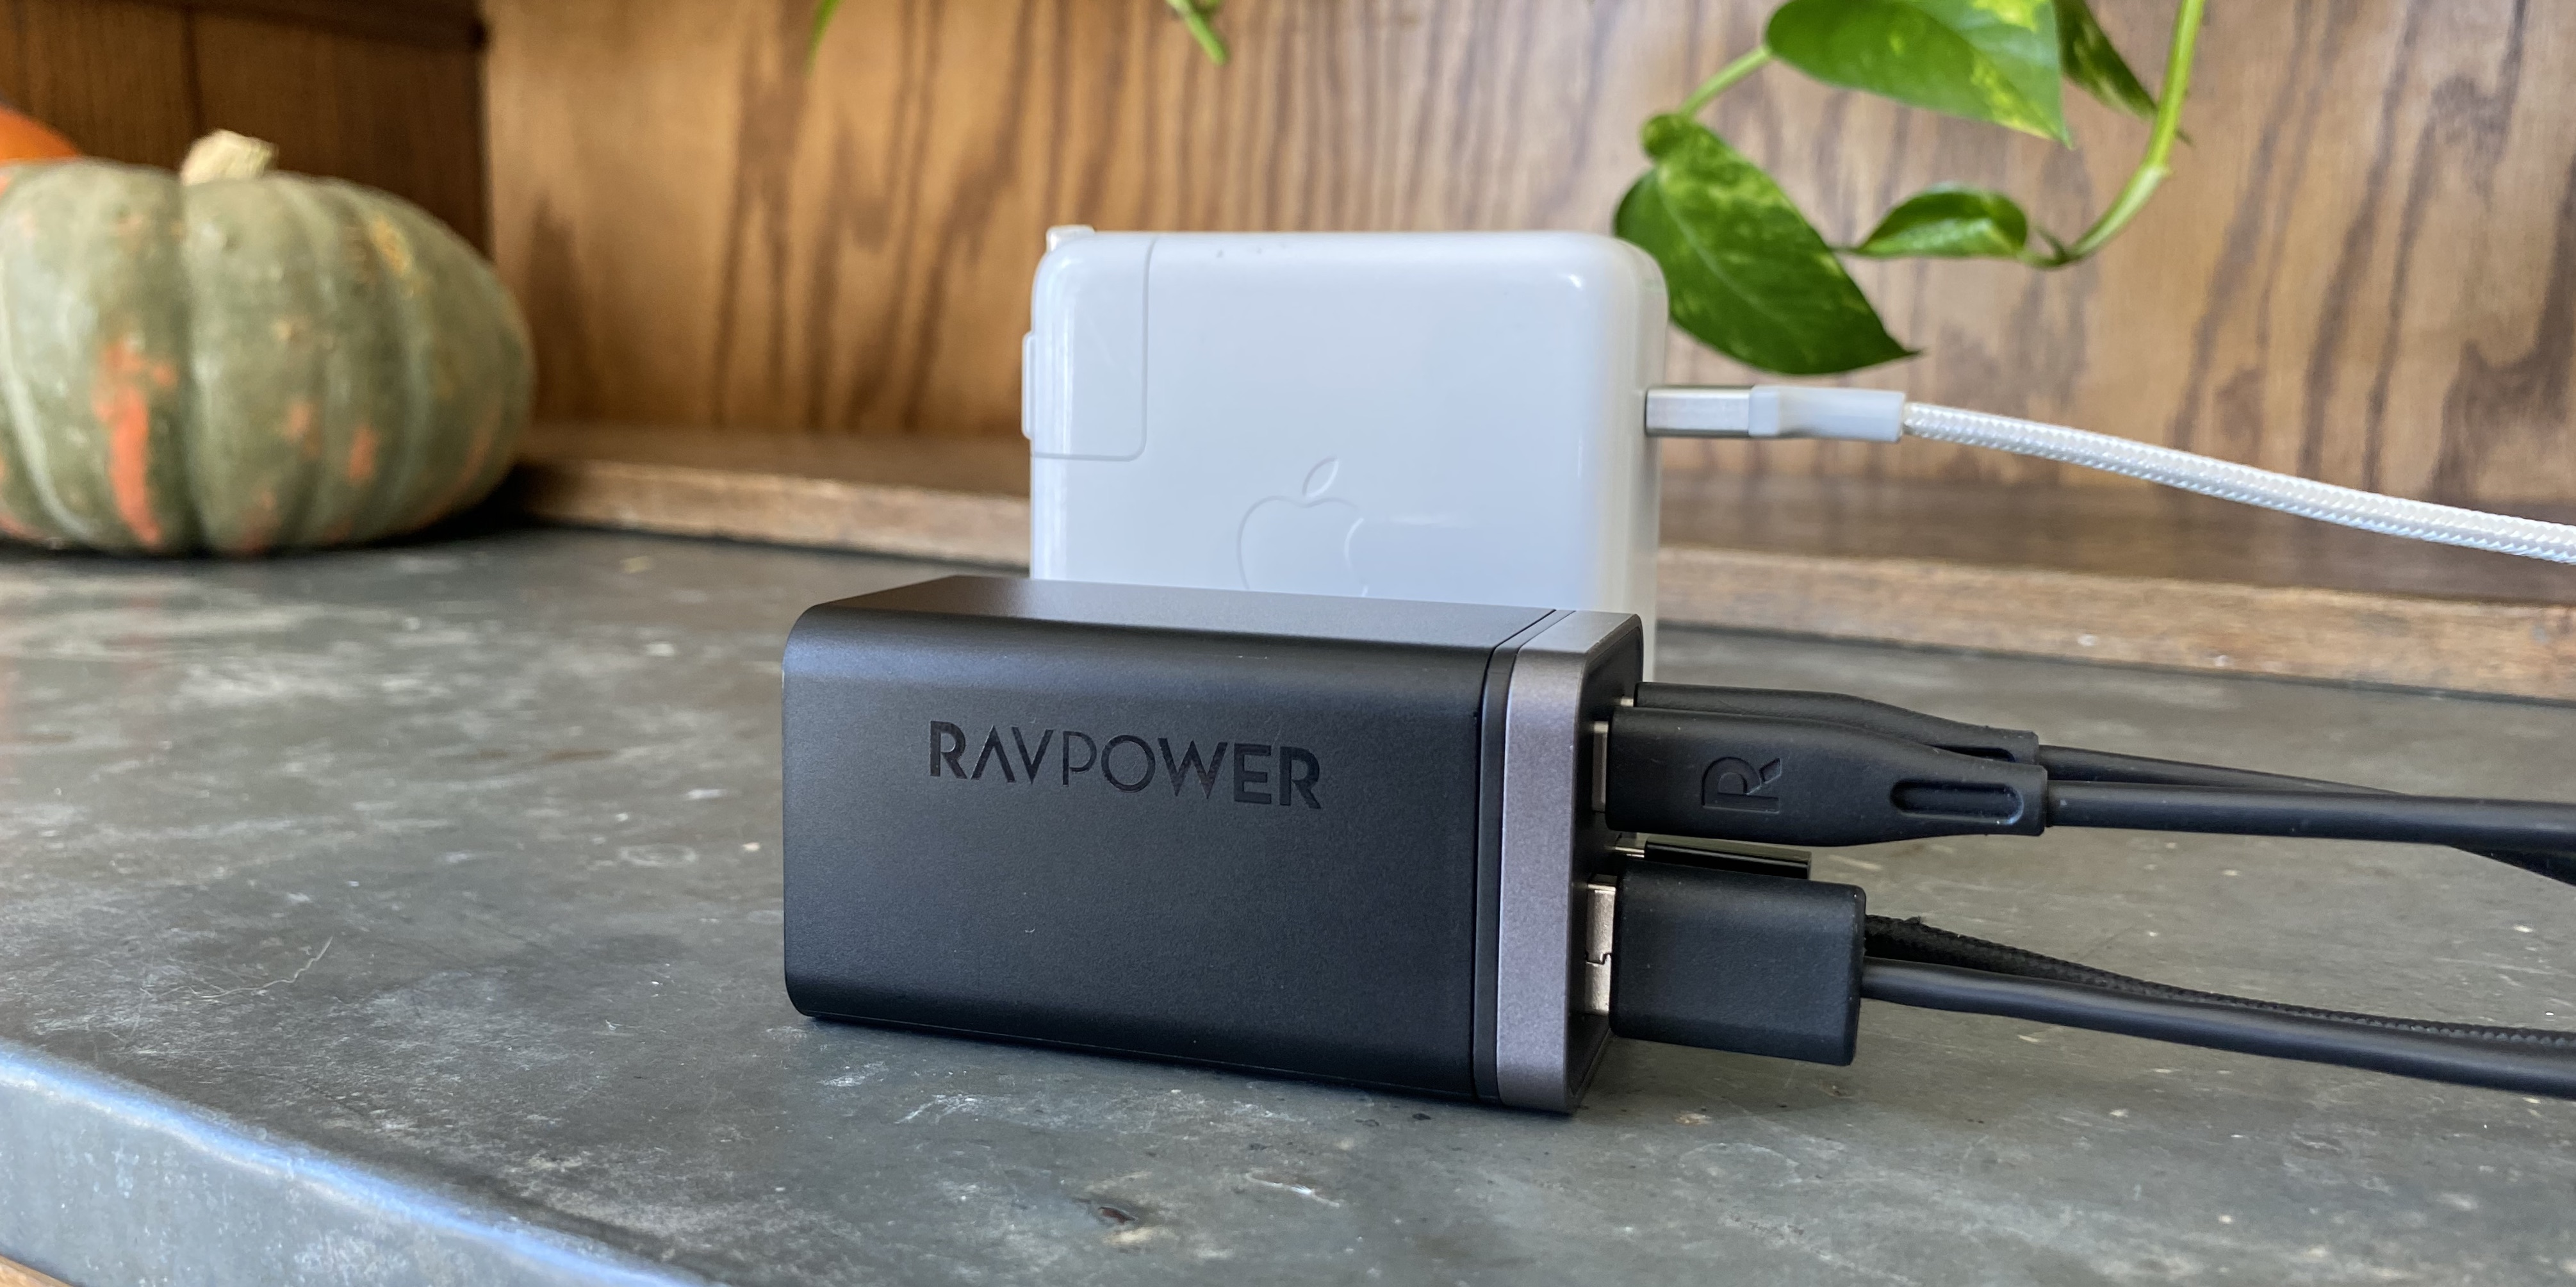 Best multi-device chargers for families with iPhone, iPad –RavPower 65W USB-C Charging Station